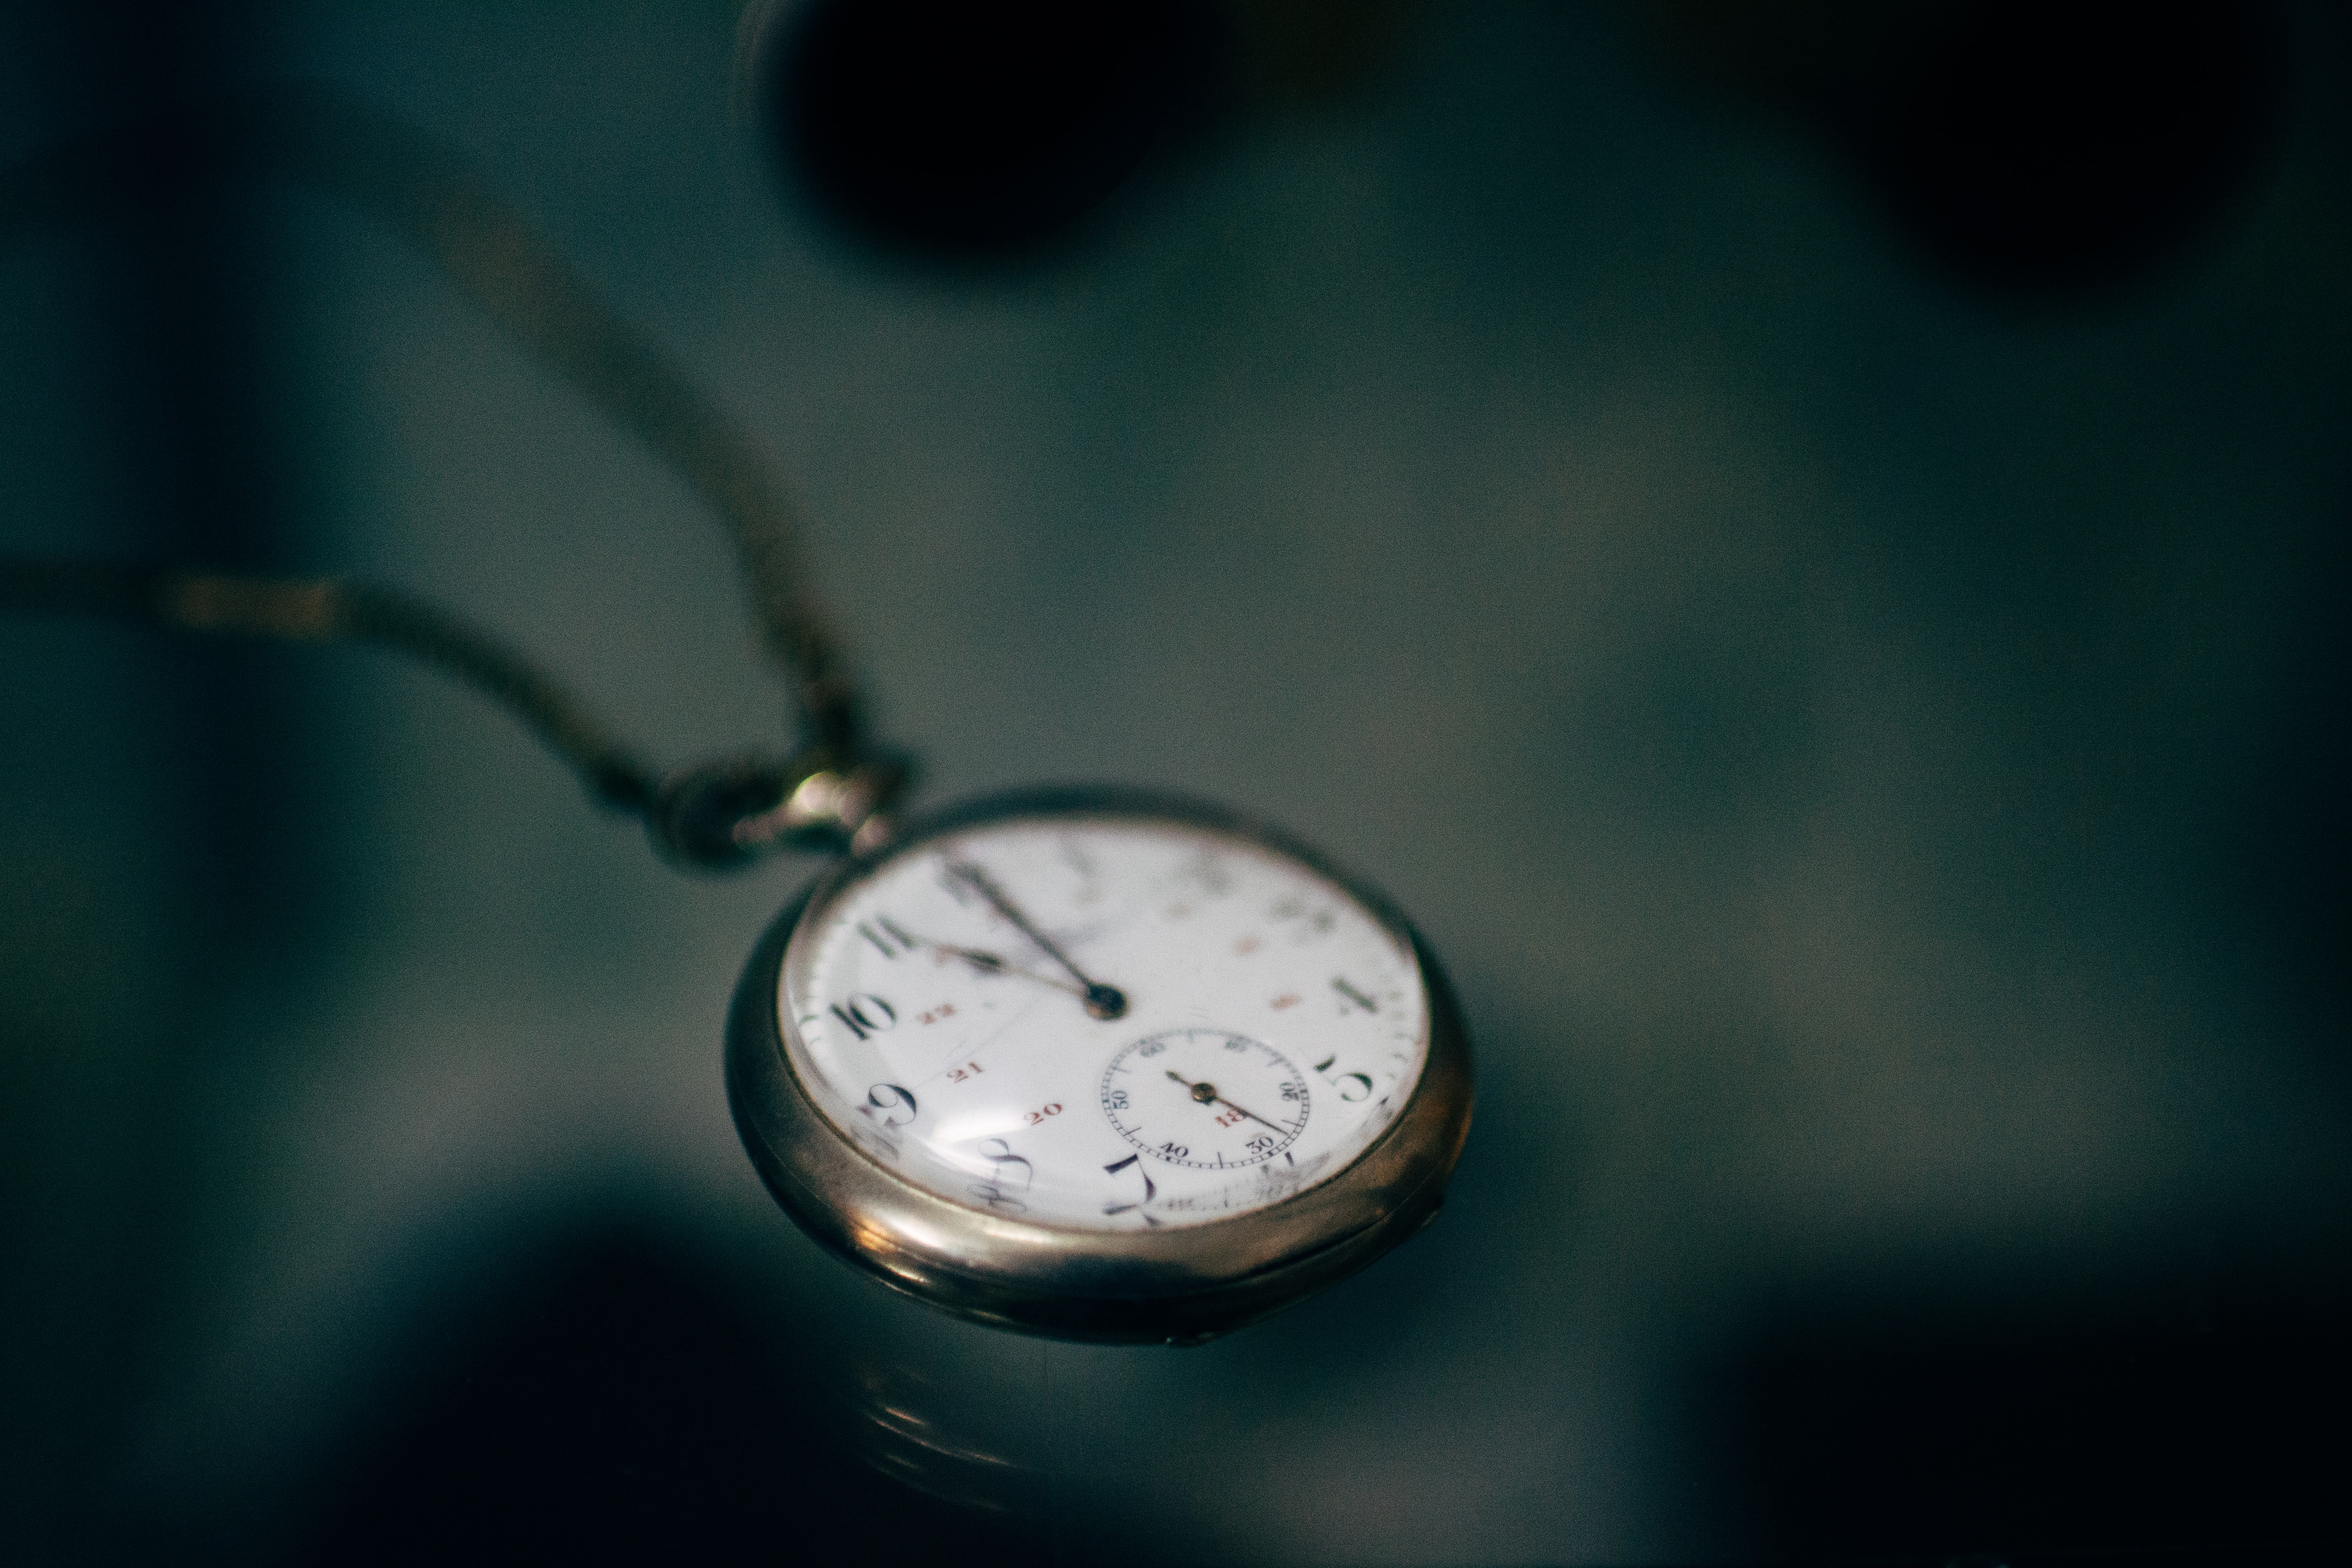 Close-up of an old pocket watch